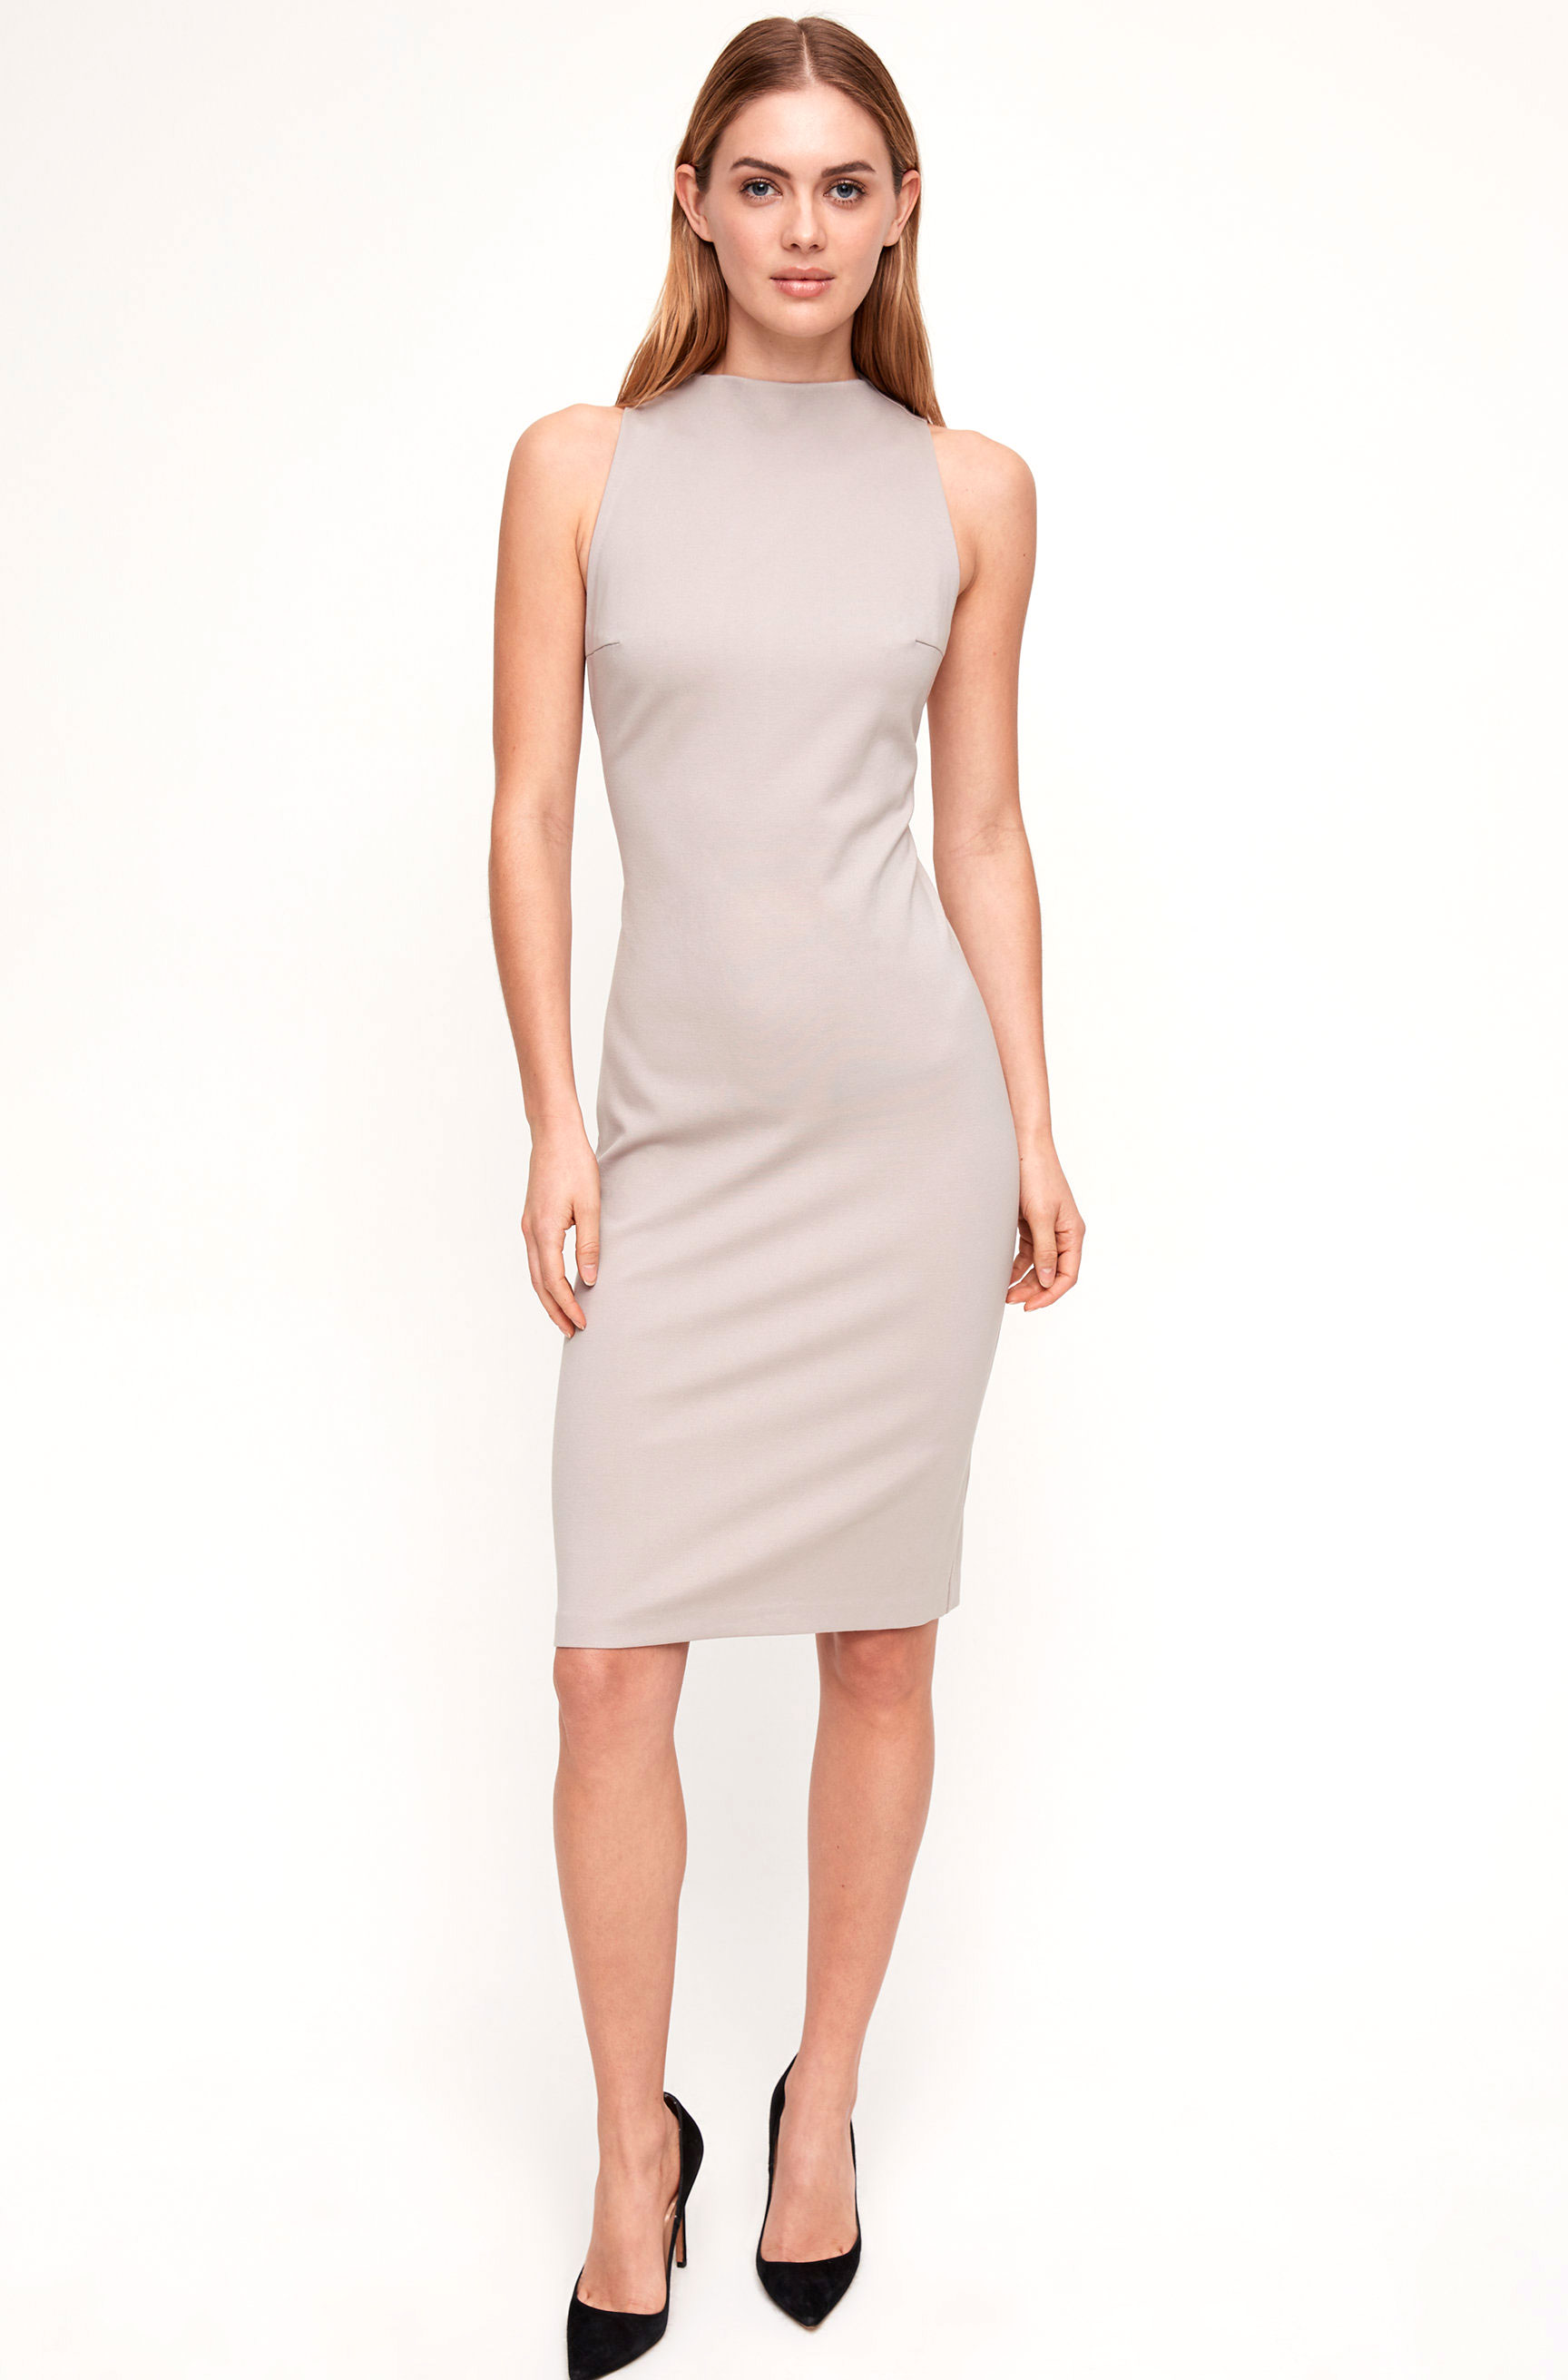 Aritzia Neutral Dress    $98